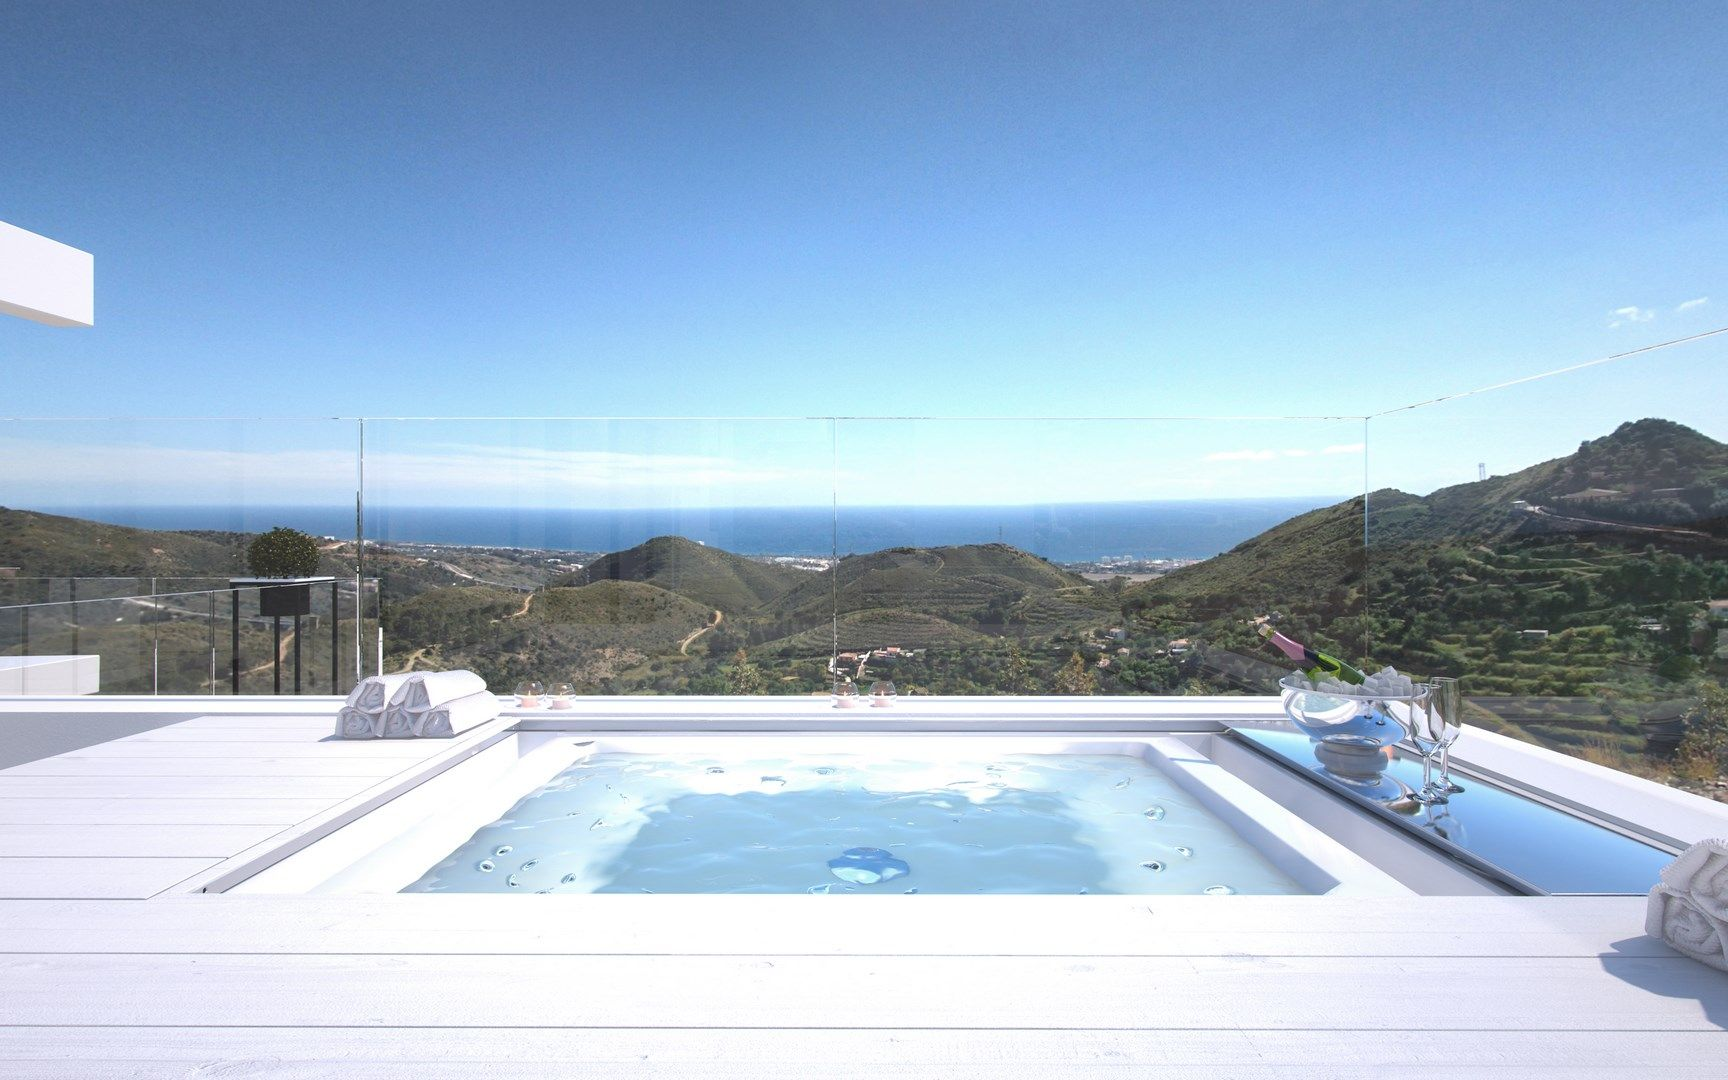 Photo gallery - Modern sea view apartments for sale above Marbella ...